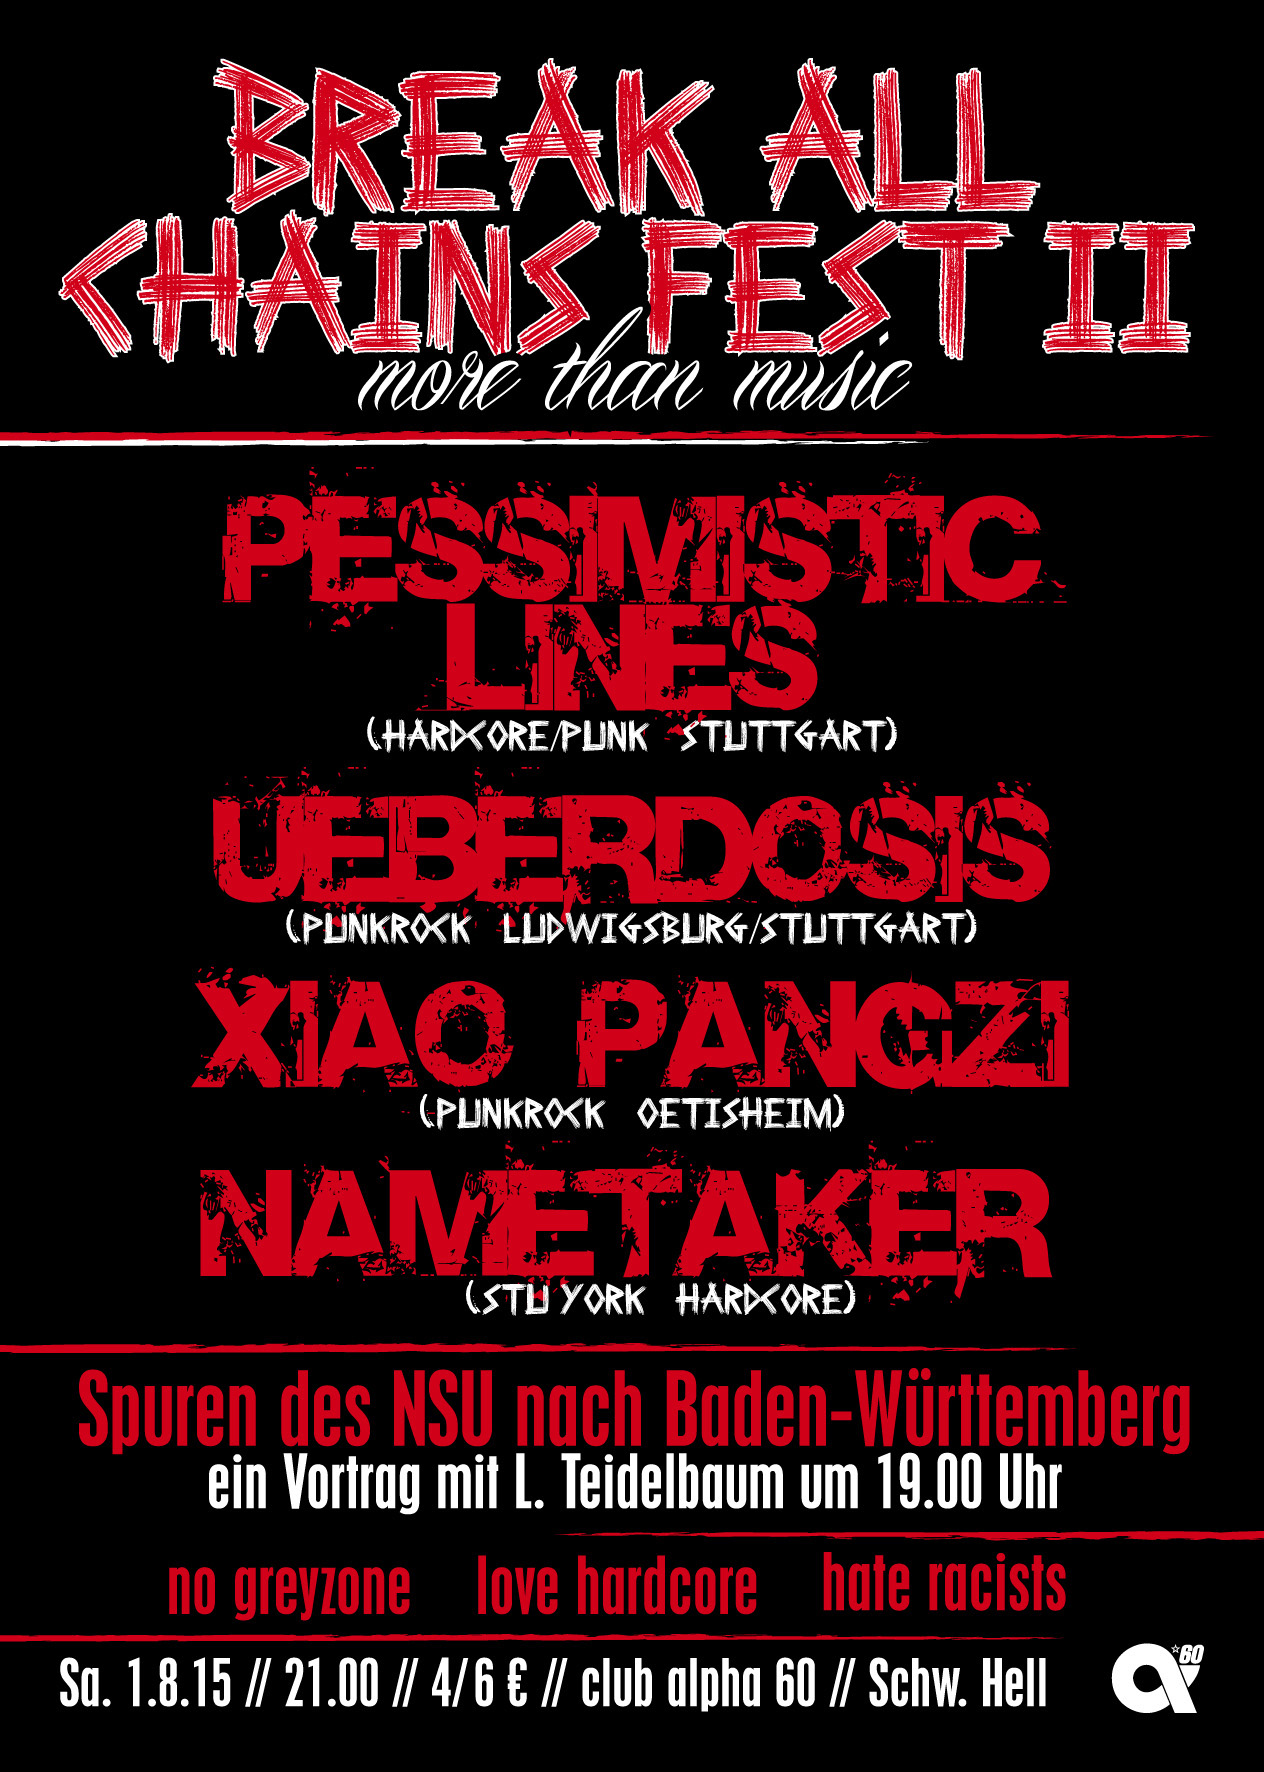 Samstag, 1.8.15: BREAK ALL CHAINS FEST II